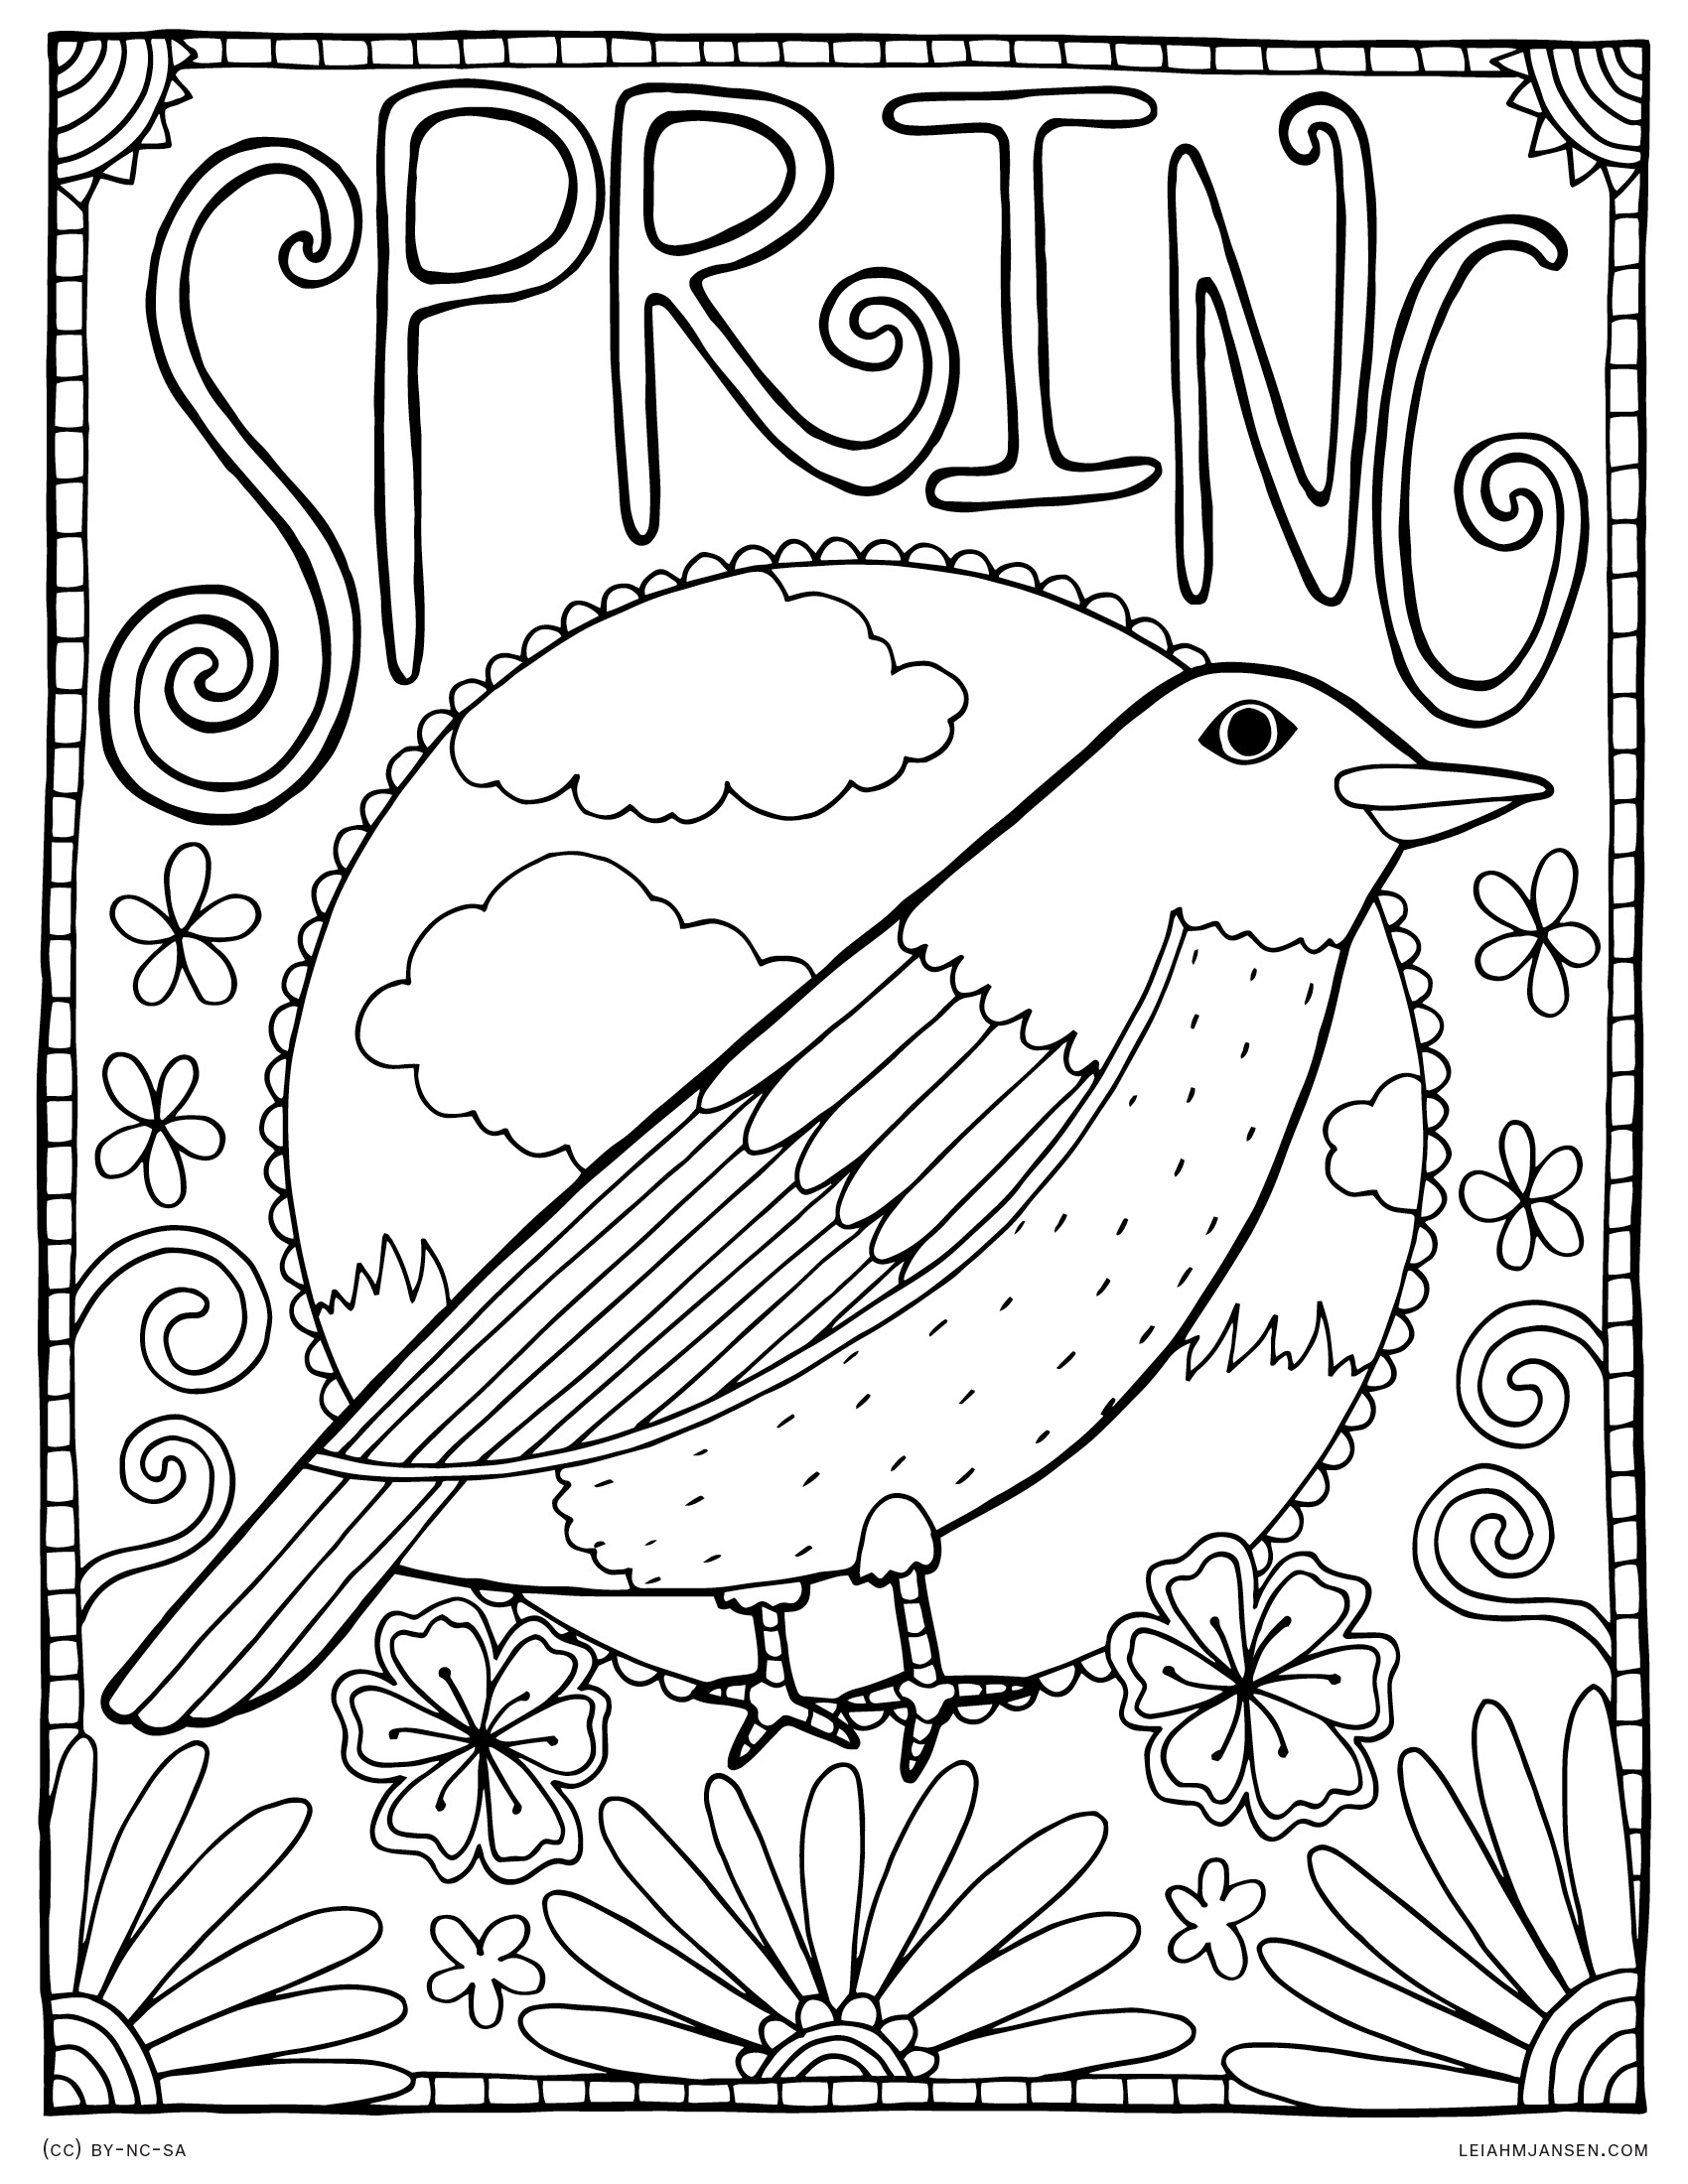 Spring Robin - Seasonal Spring Bird - Free Printable Coloring Page for Adults and Kids, by leiahmjansen.com